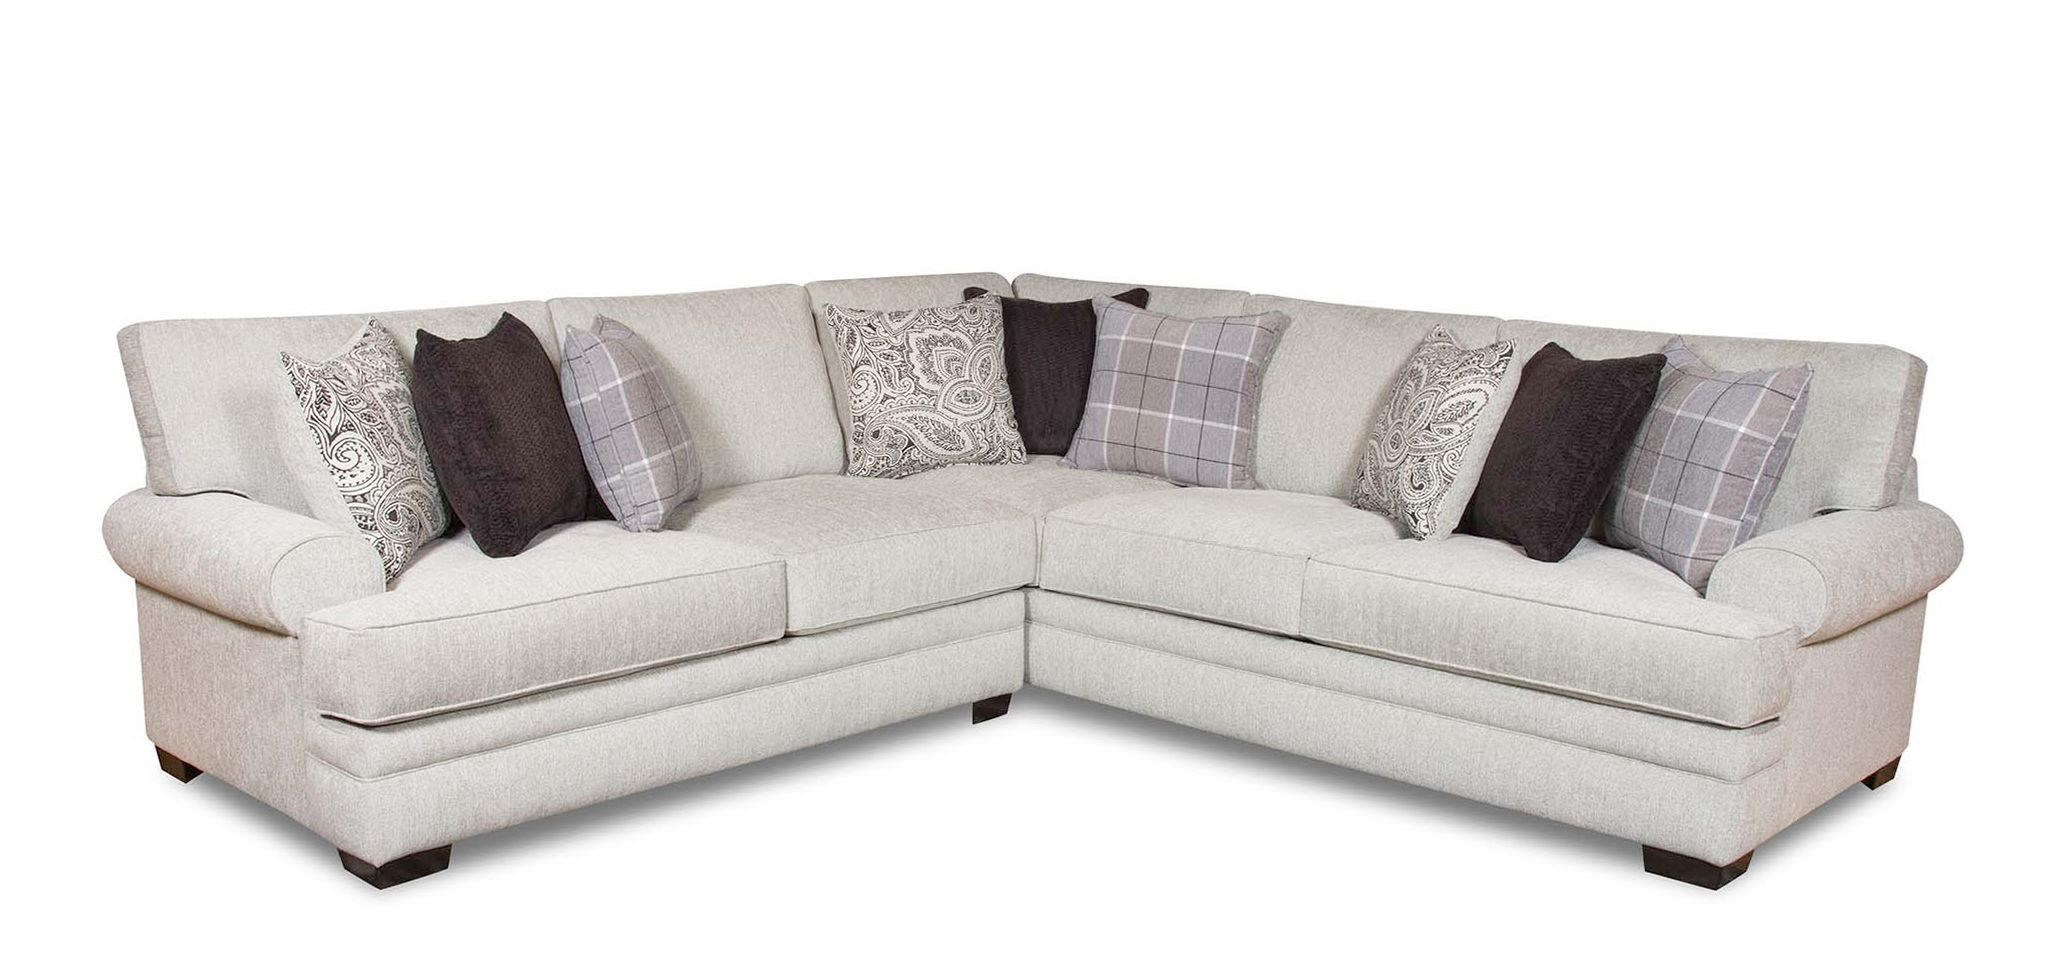 8642 transitional sectional sofa with chaise by albany dalton french grey review home co